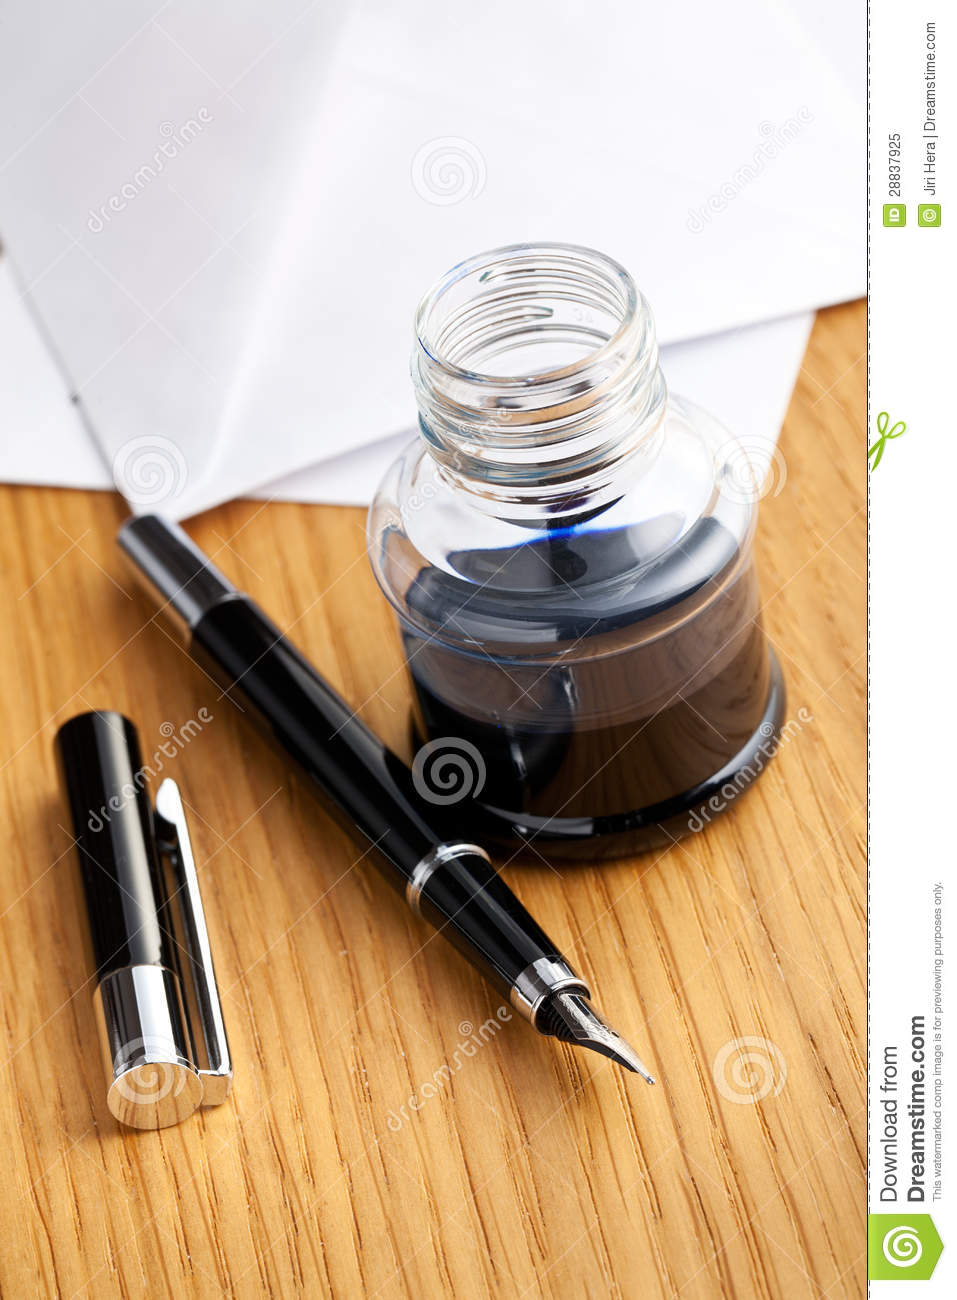 Royalty Free Stock Photo  Fountain pen and inkwell on deskFountain Pen And Inkwell